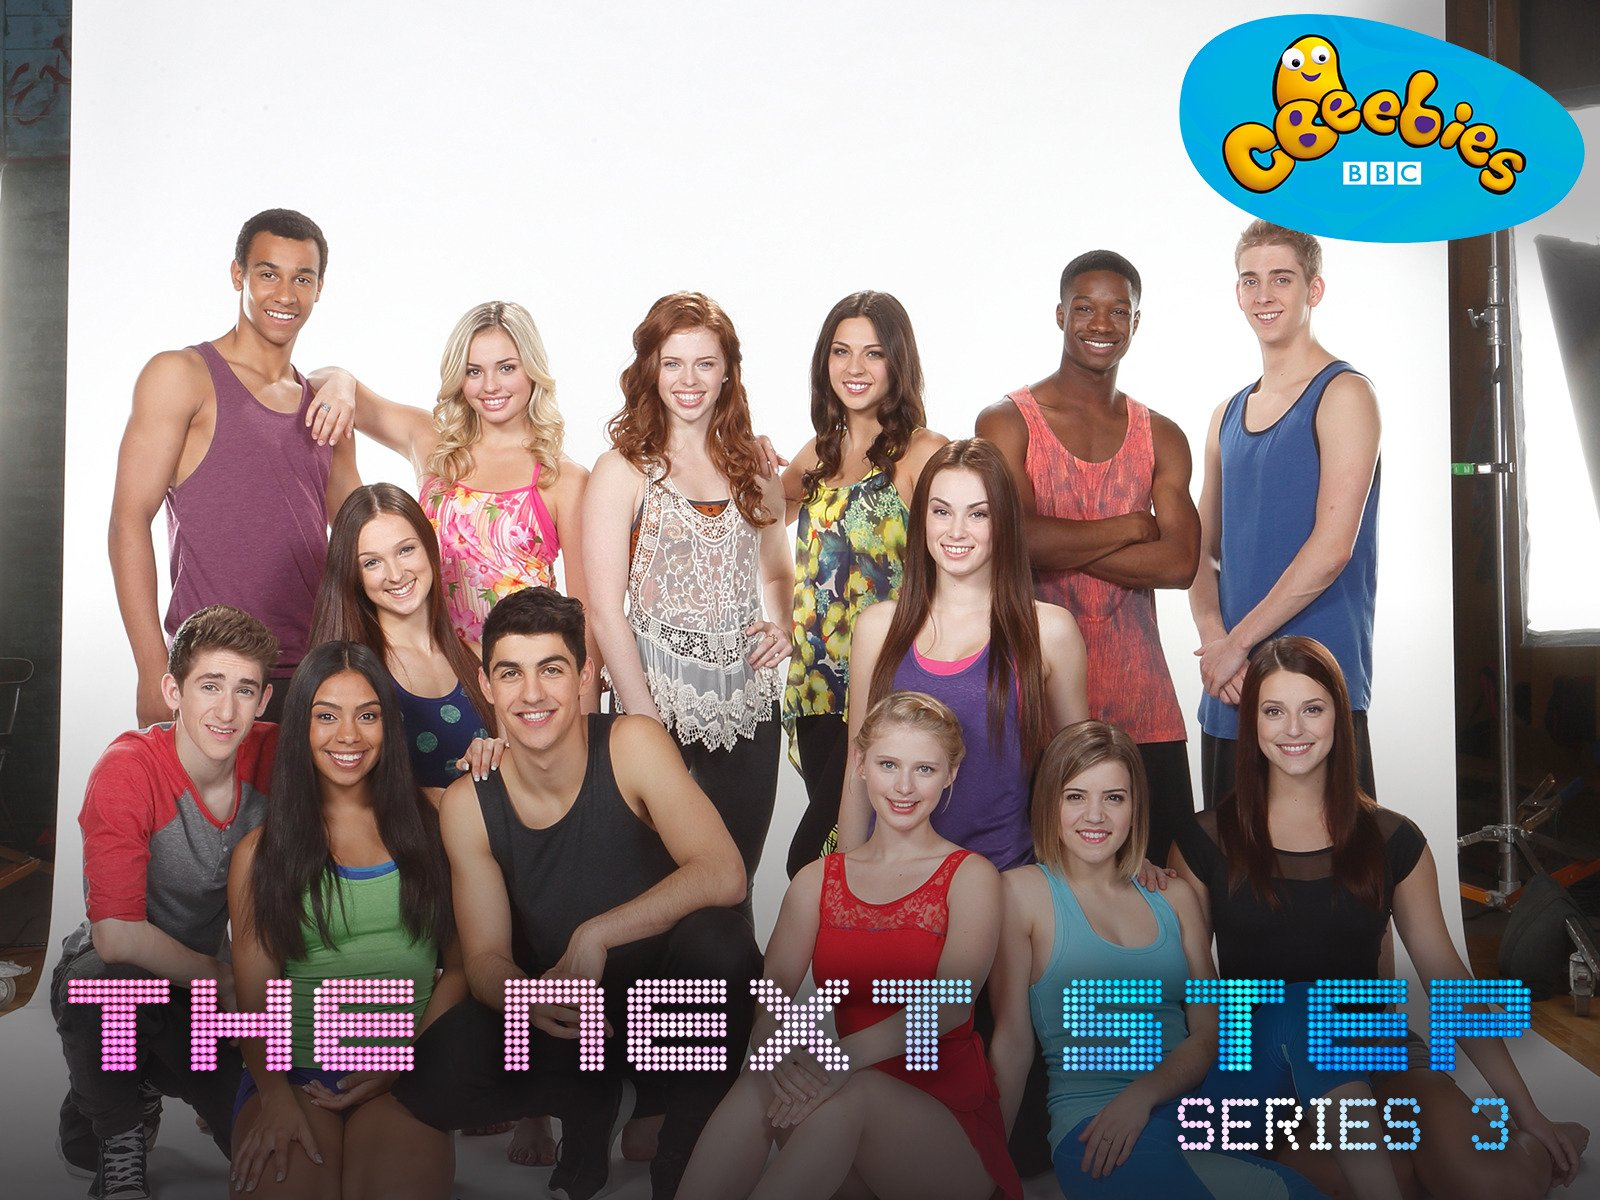 The Next Step, Season 3 - Season 3